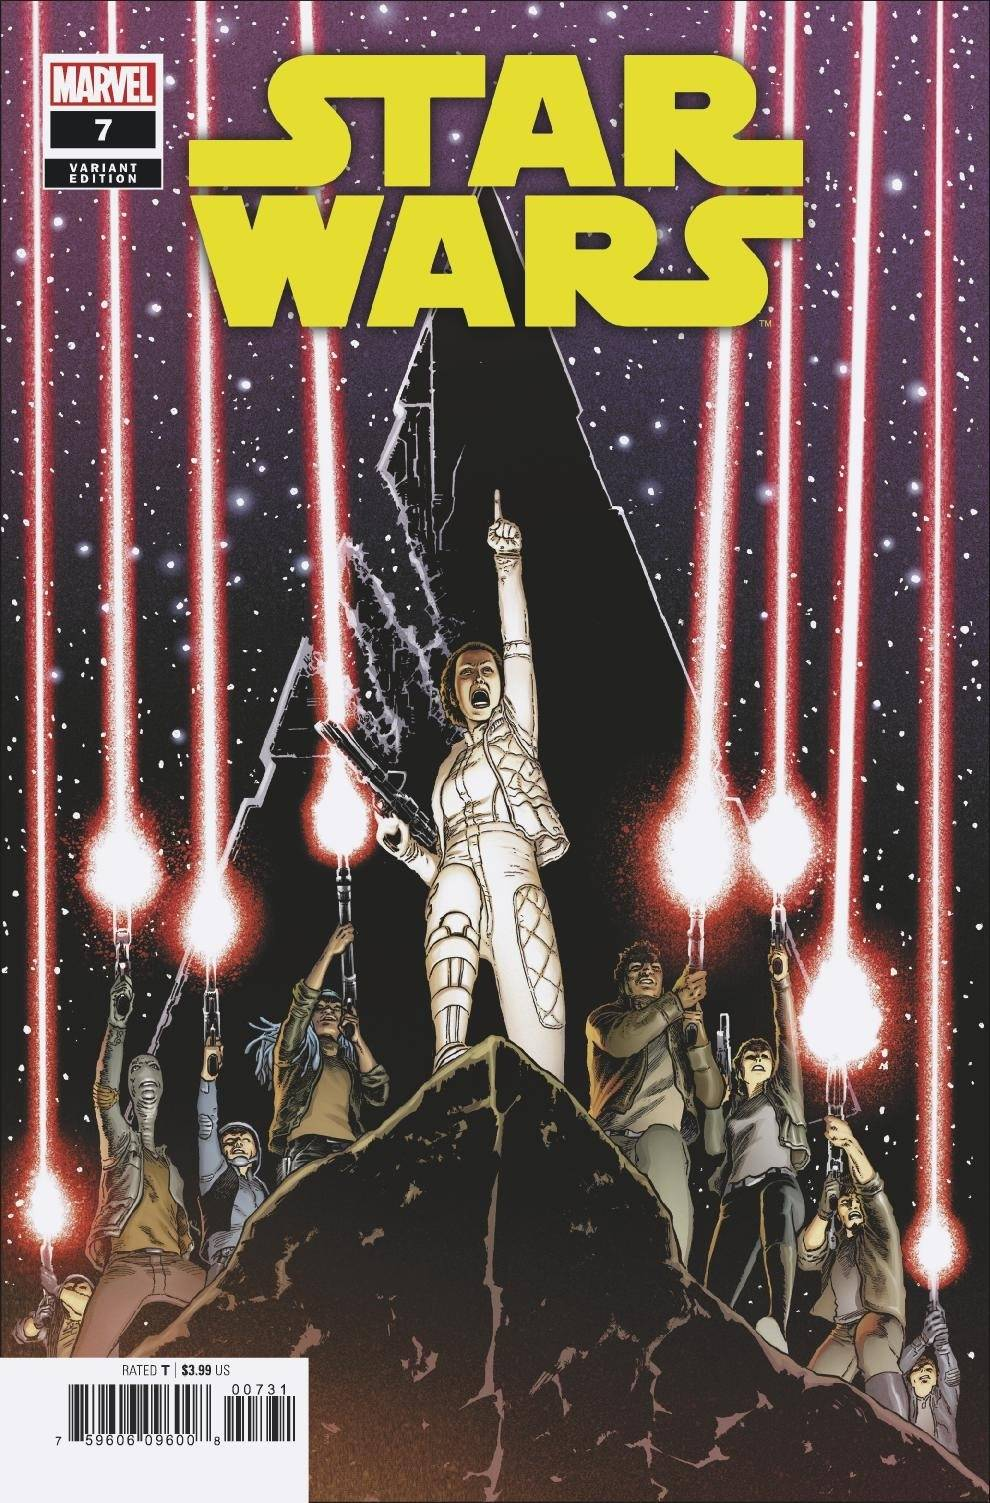 Star Wars #7 (Aaron Kuder Variant Cover) (07.10.2020)